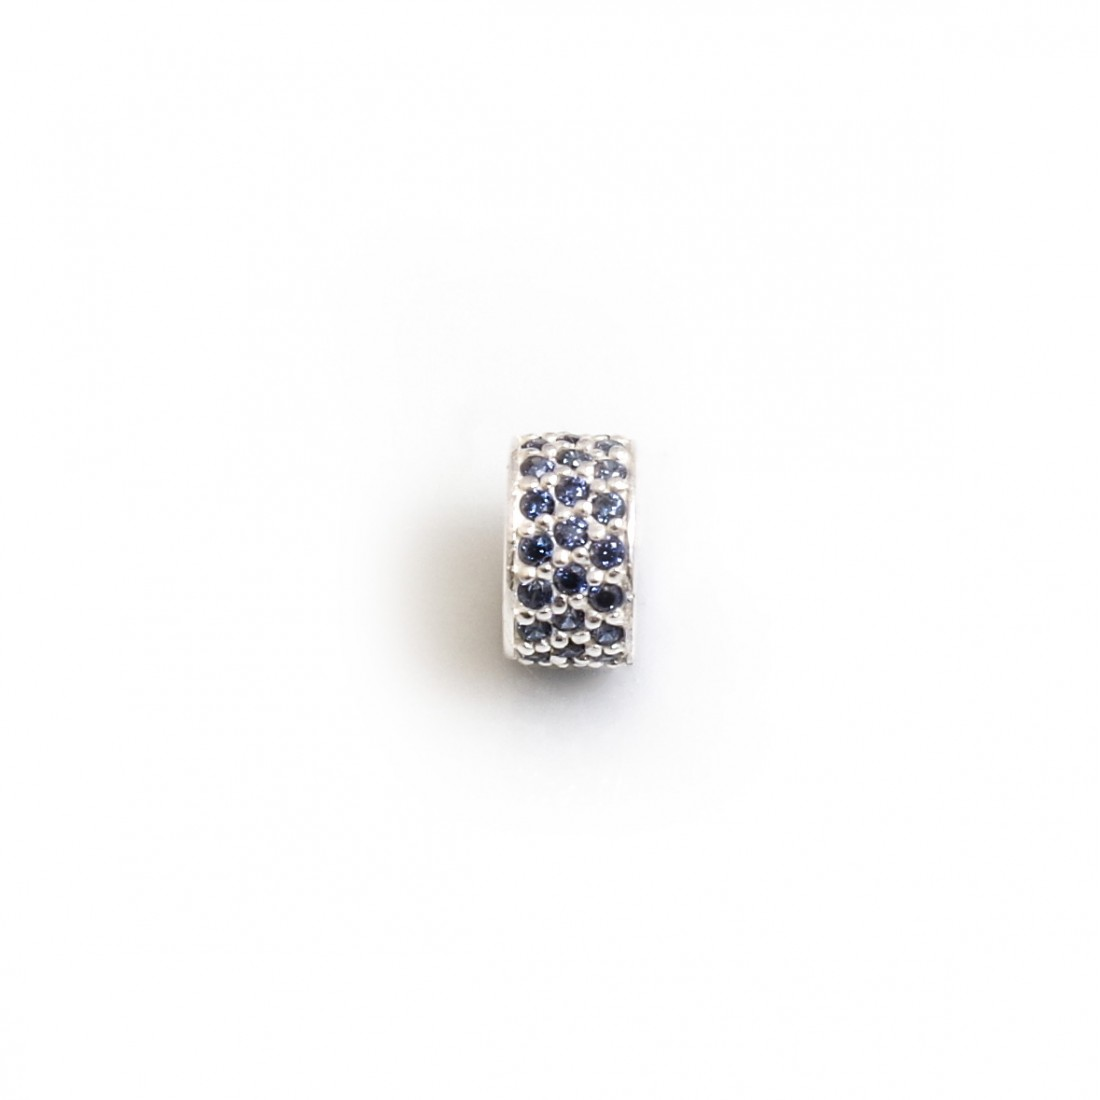 Exclusive Sterling Silver & Tanzanite CZ Starlight Roller Charm Bead